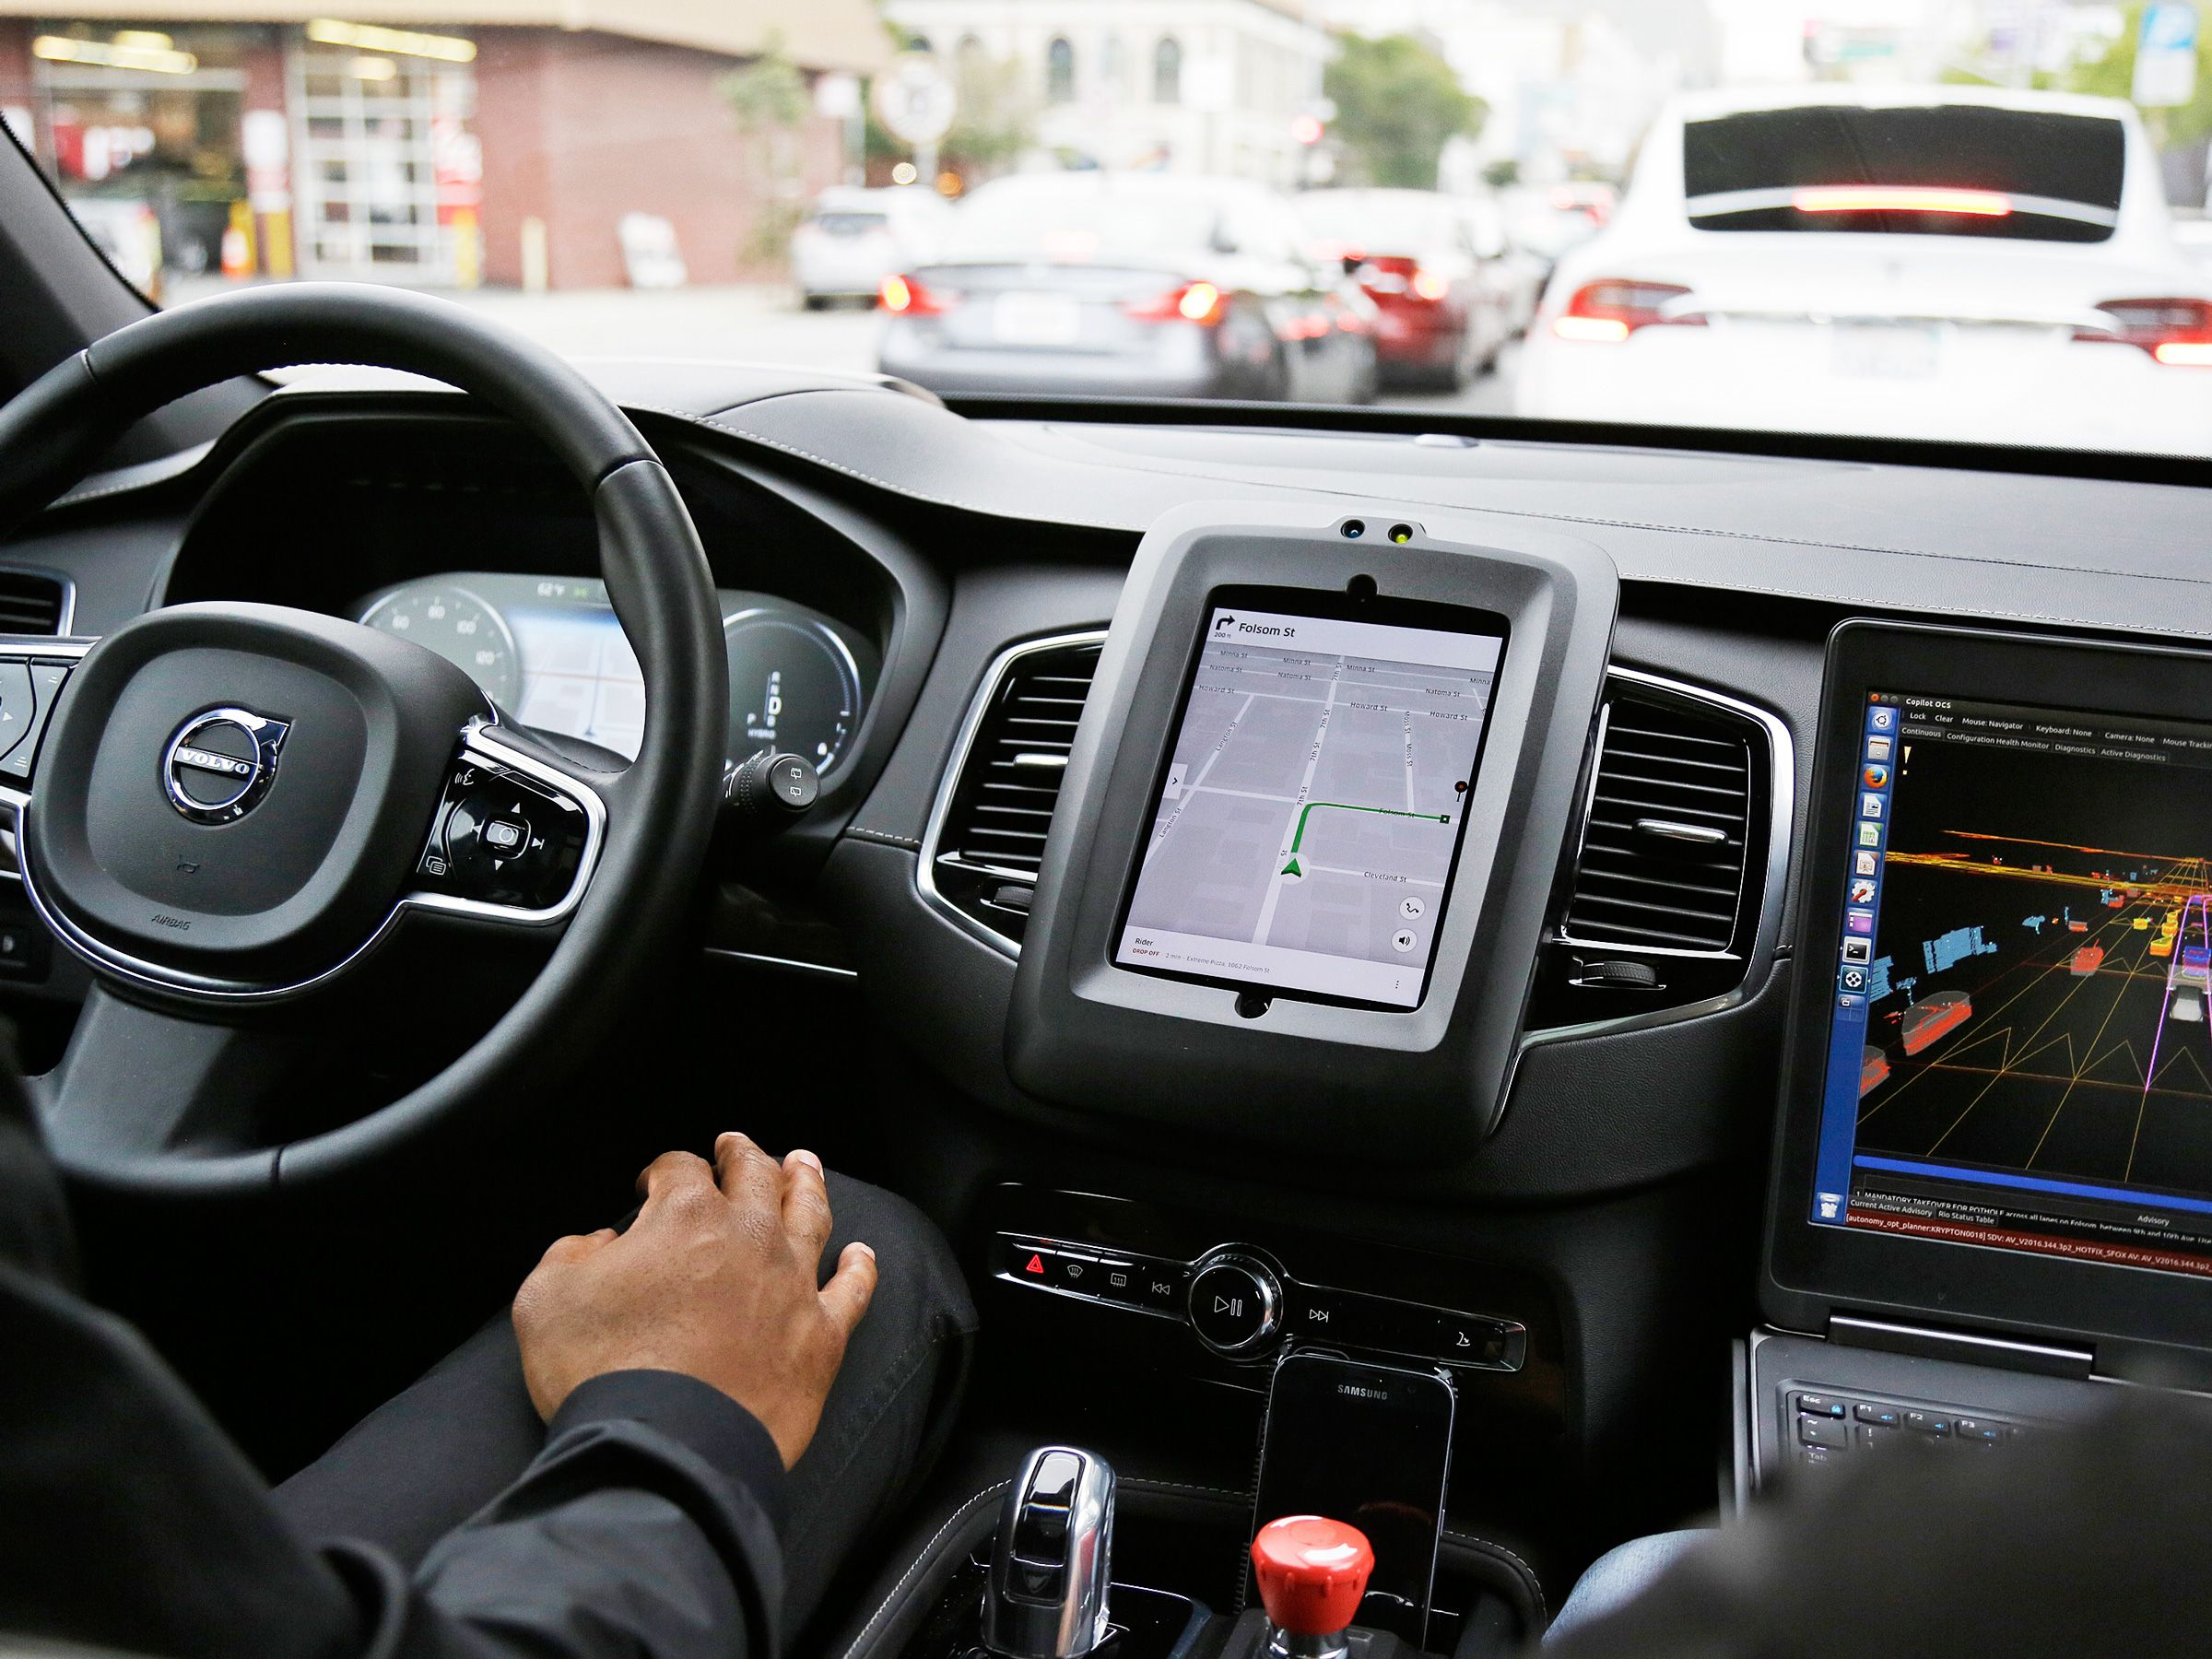 Securing Driverless Cars From Hackers Is Hard. Ask the Ex-Uber Guy Who Protects Them | An Uber driverless car during a test drive in San Francisco. | Credit:Eric Risberg/AP | From WIRED.com